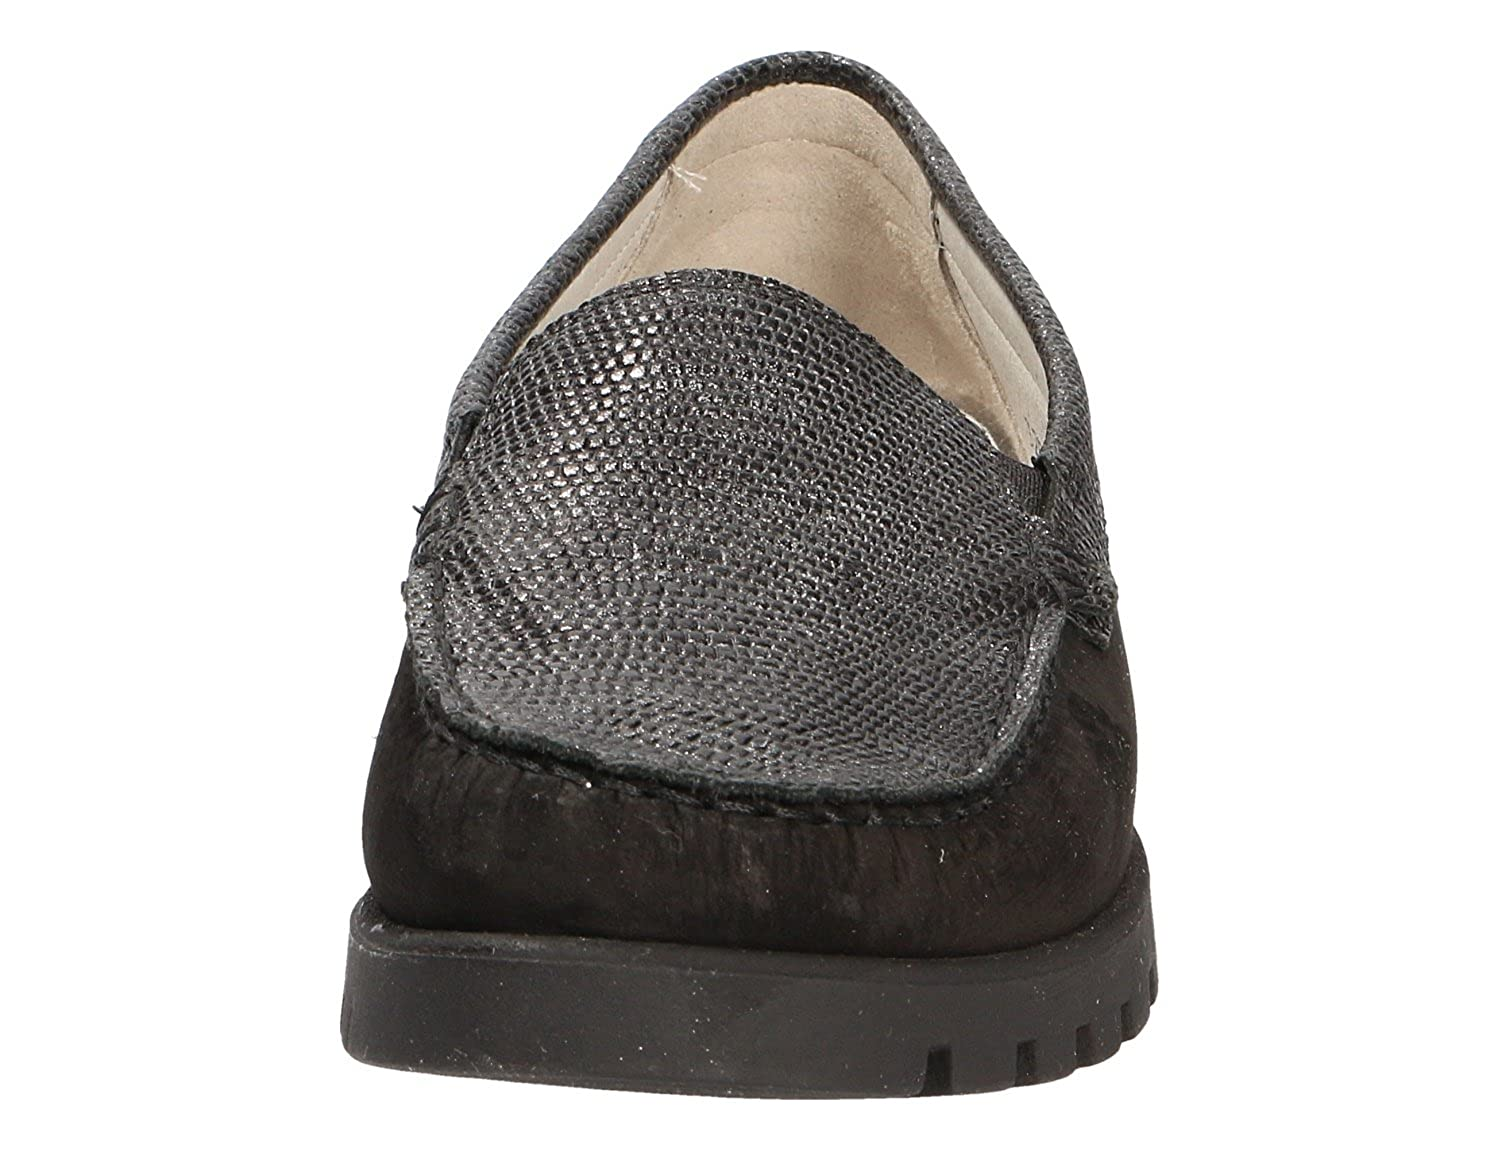 Waldläufer Damen Slipper 304336 Hegli -H- 549001.202.001 Schwarz 304336 Slipper e56916